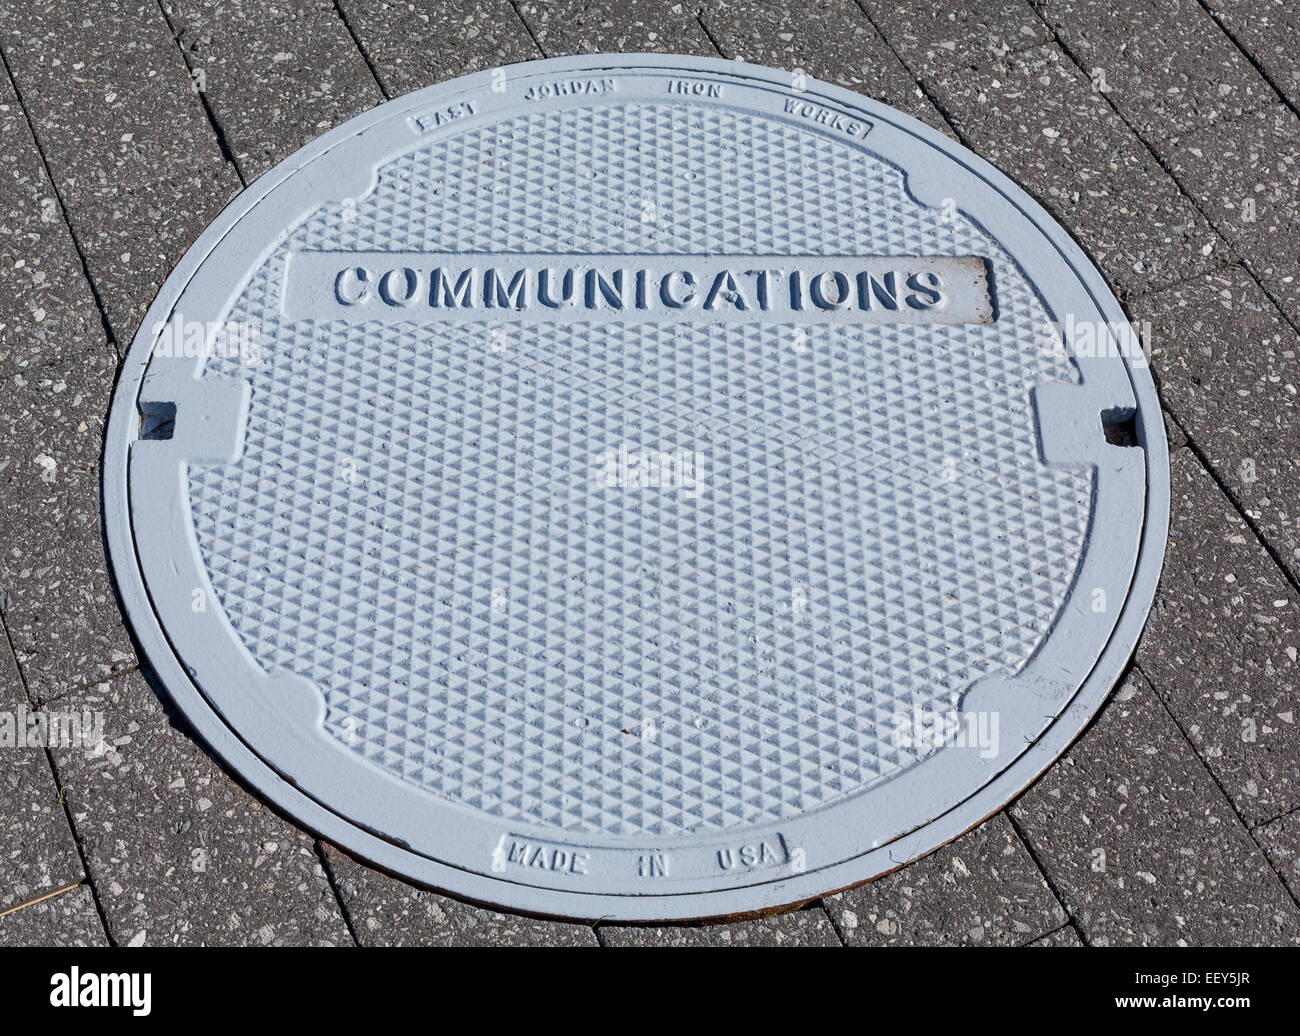 Communications manhole cover in a pavement - communication concept - Stock Image